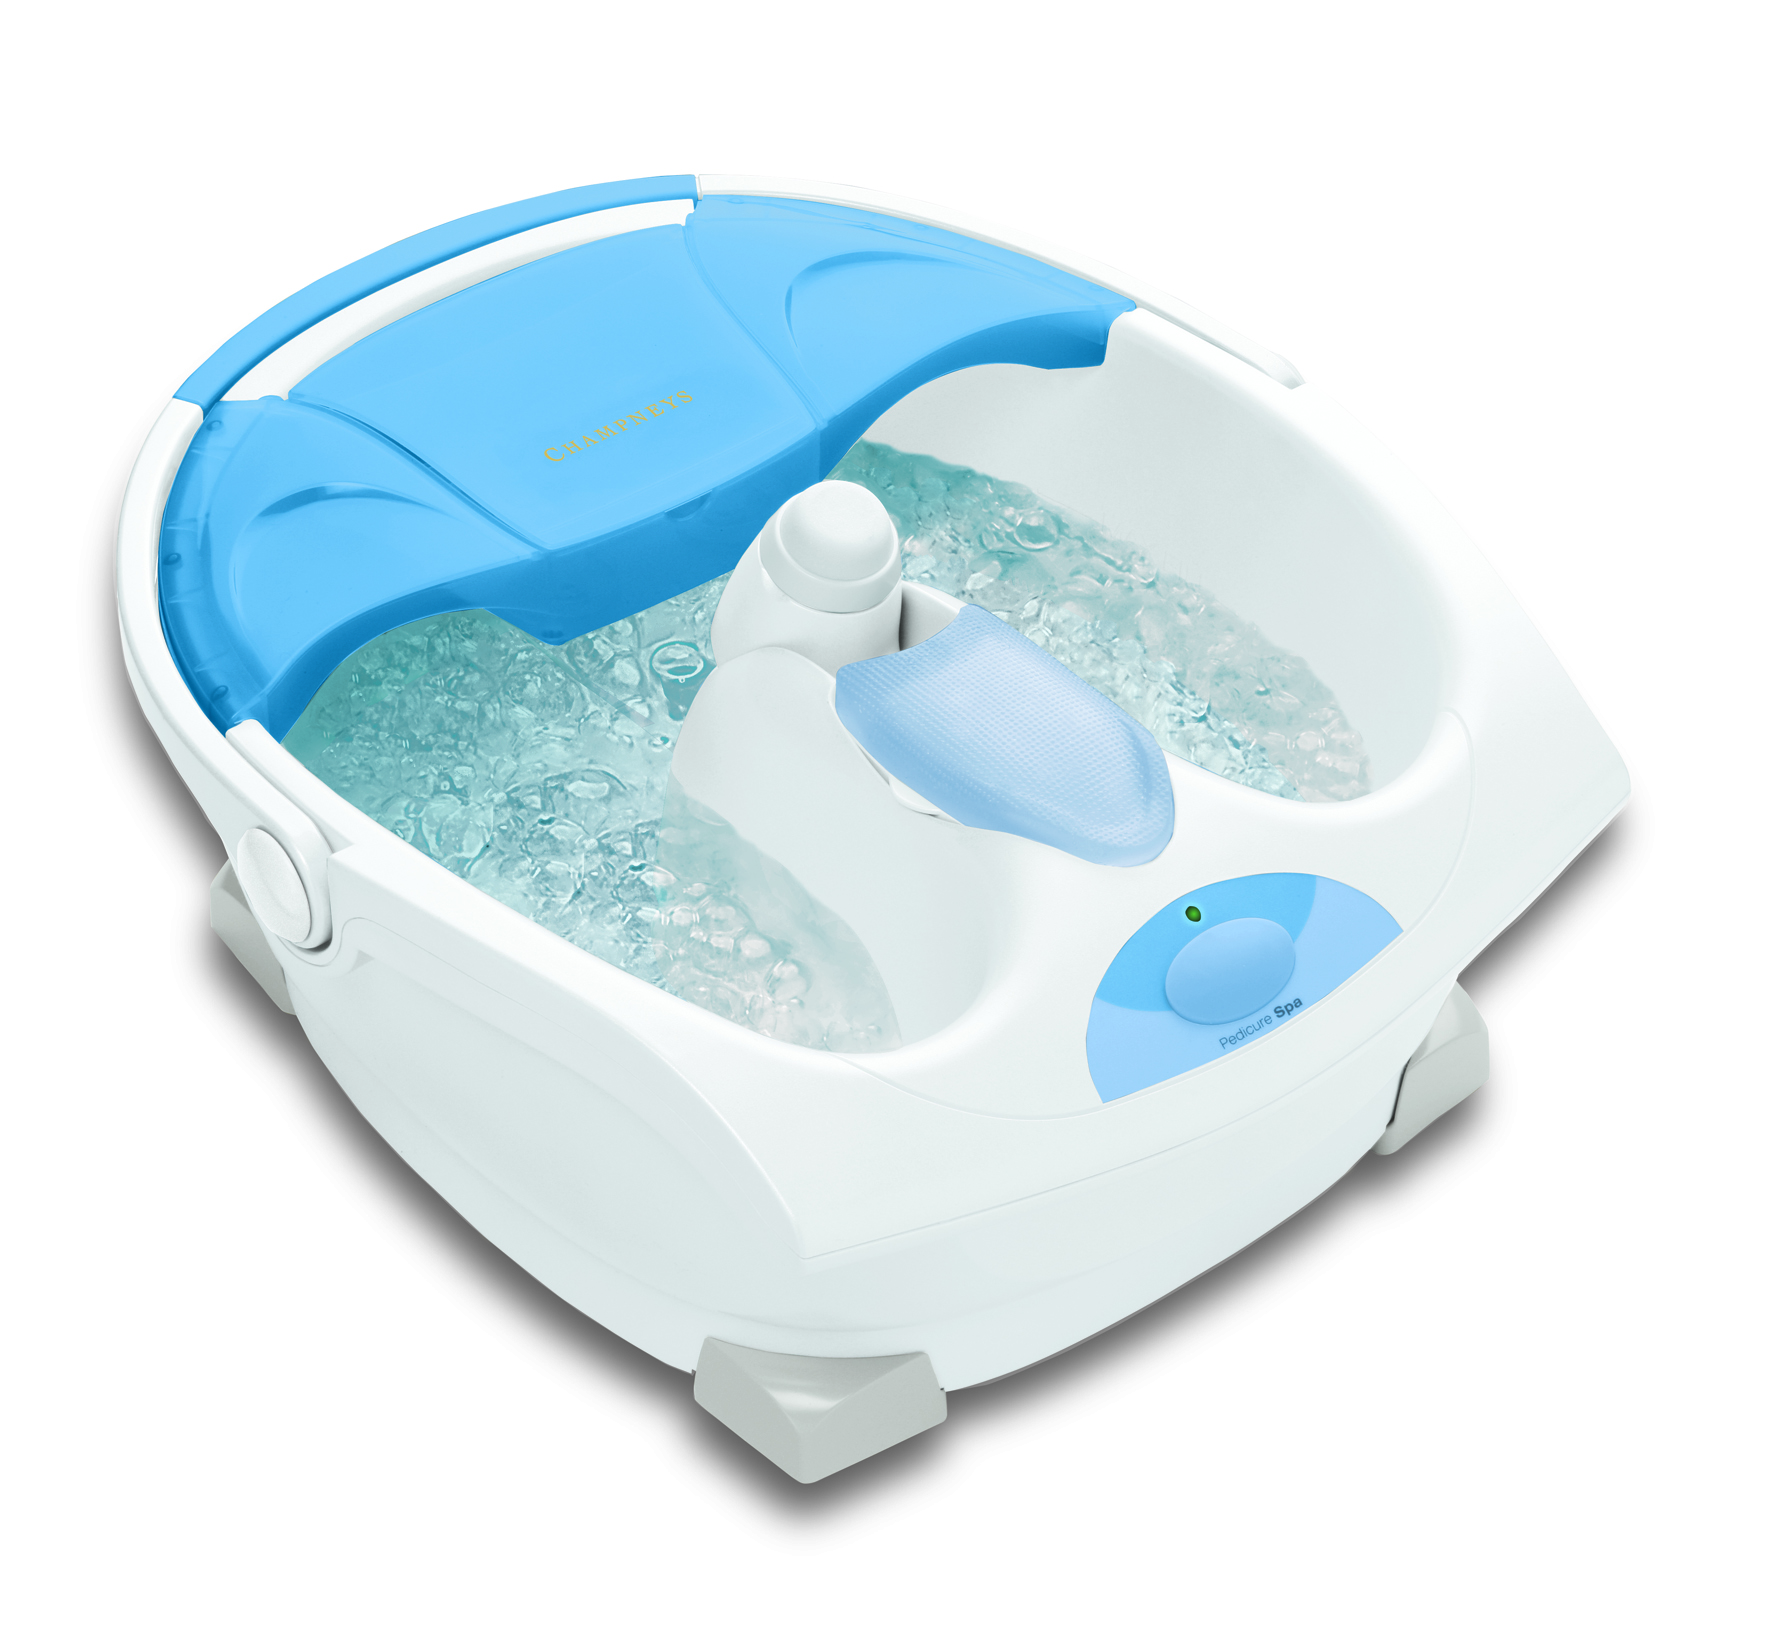 Oasis Foot Spa Parenting Without Tears